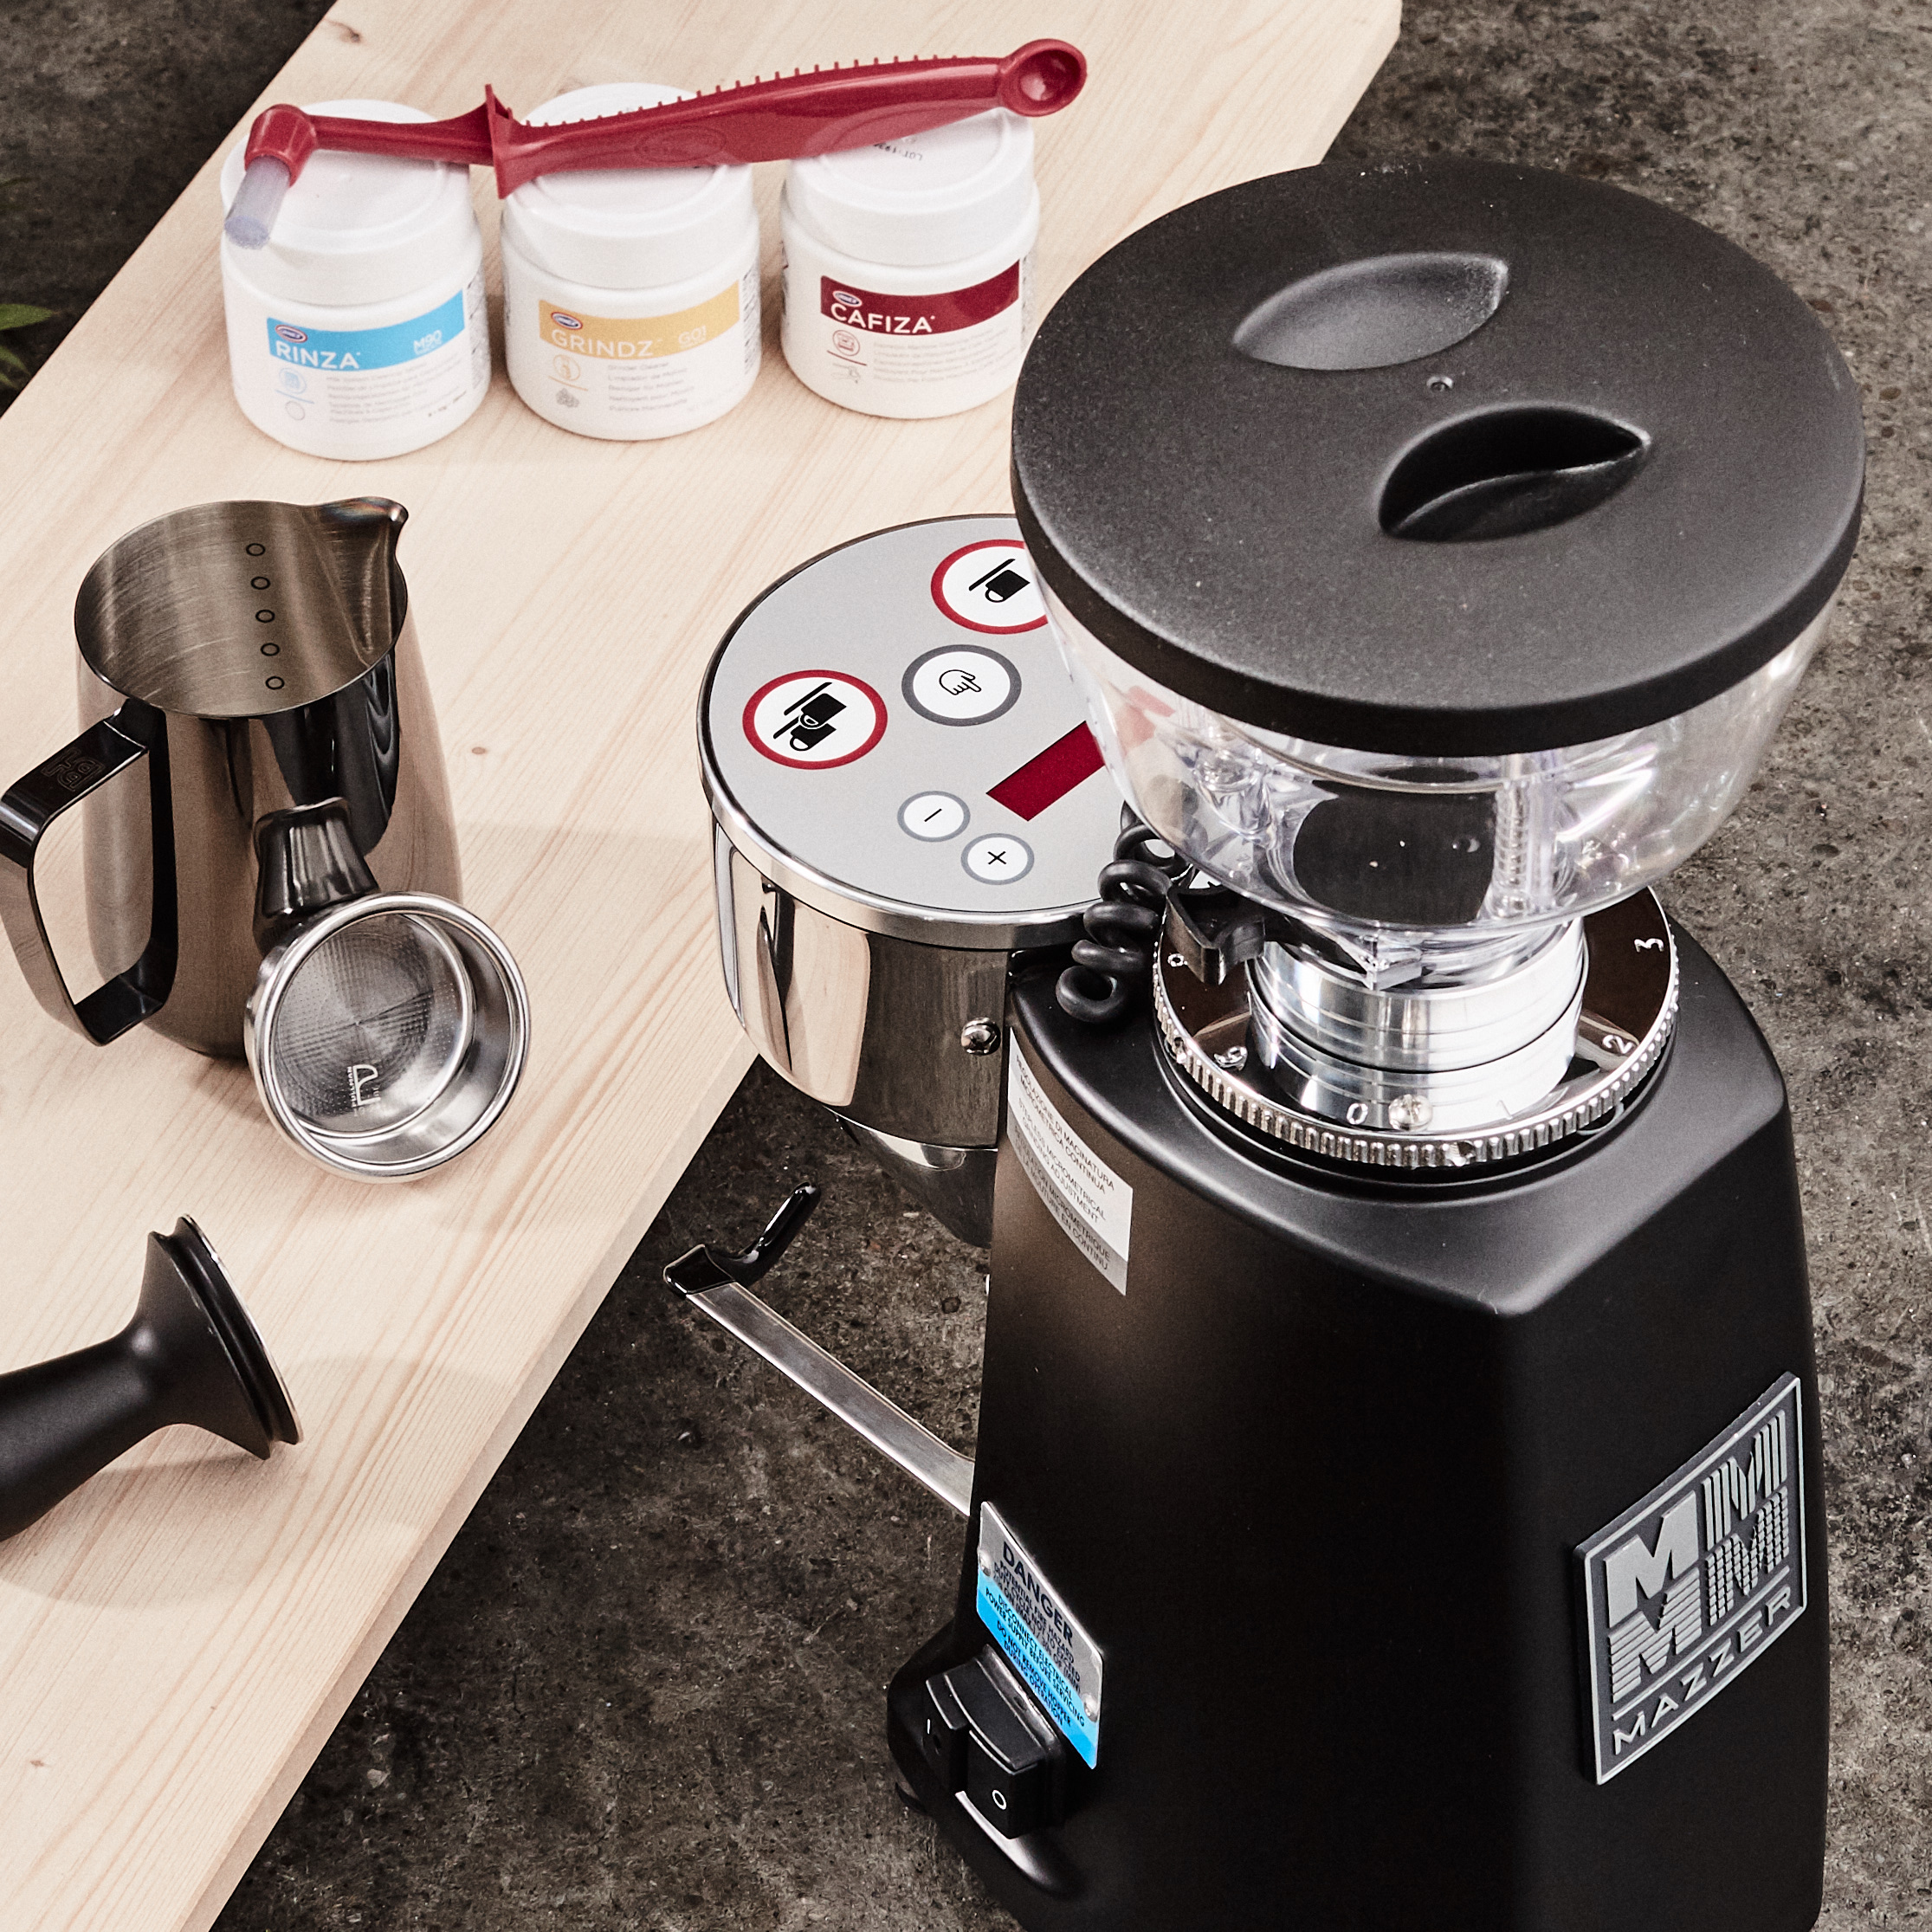 Espresso accessories and Mazzer grinder